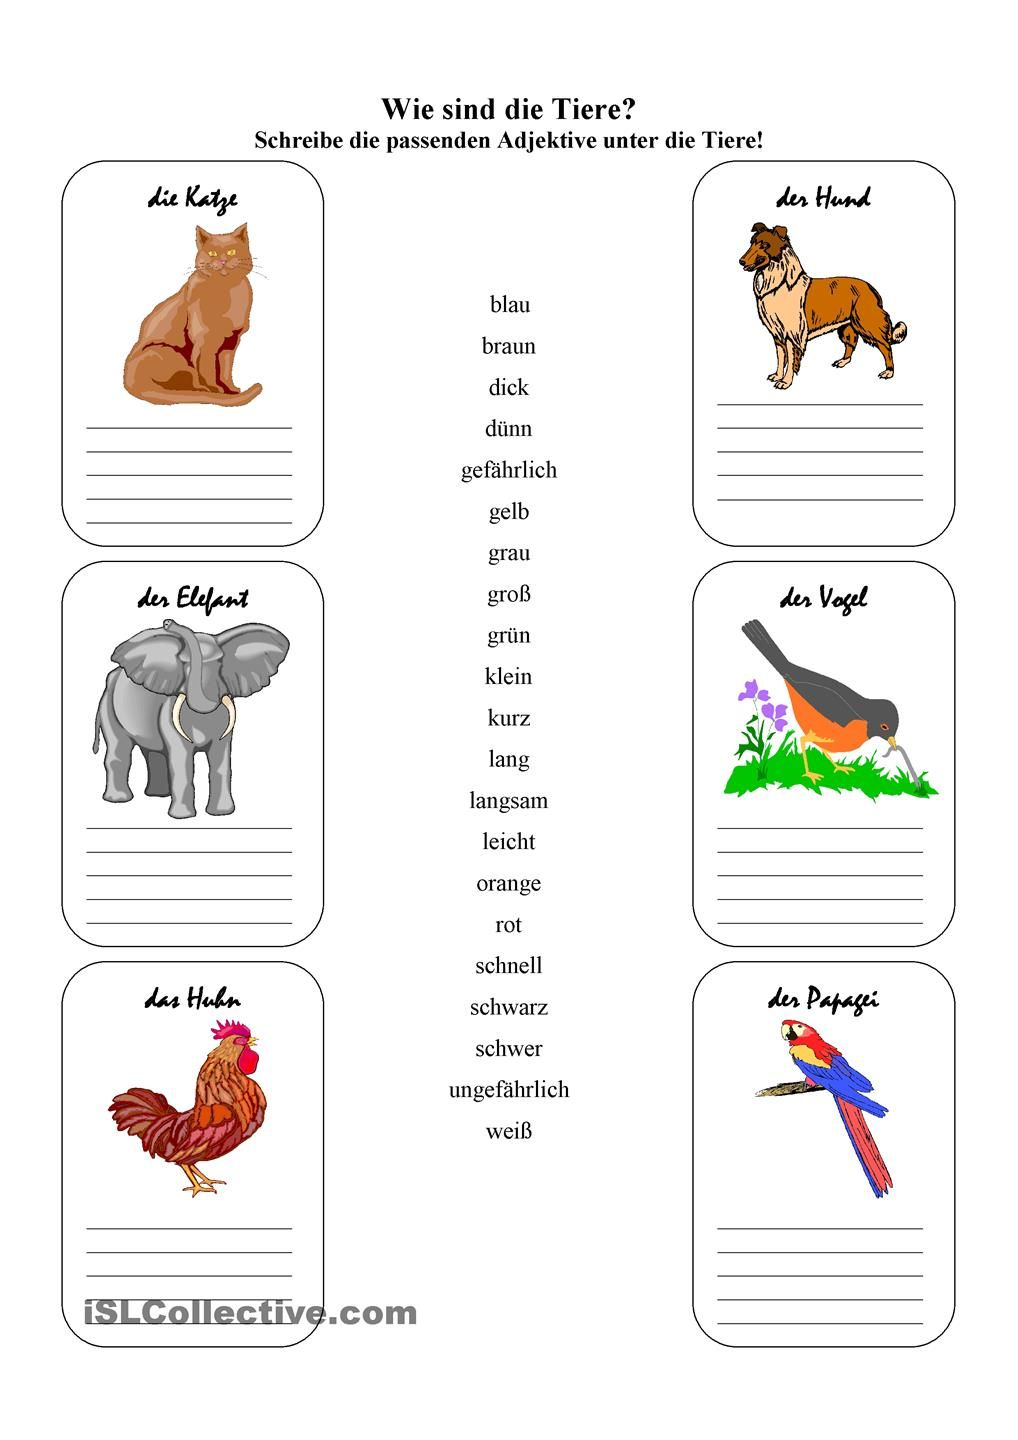 wie sind die tiere animals teacher worksheets learn german und german language. Black Bedroom Furniture Sets. Home Design Ideas